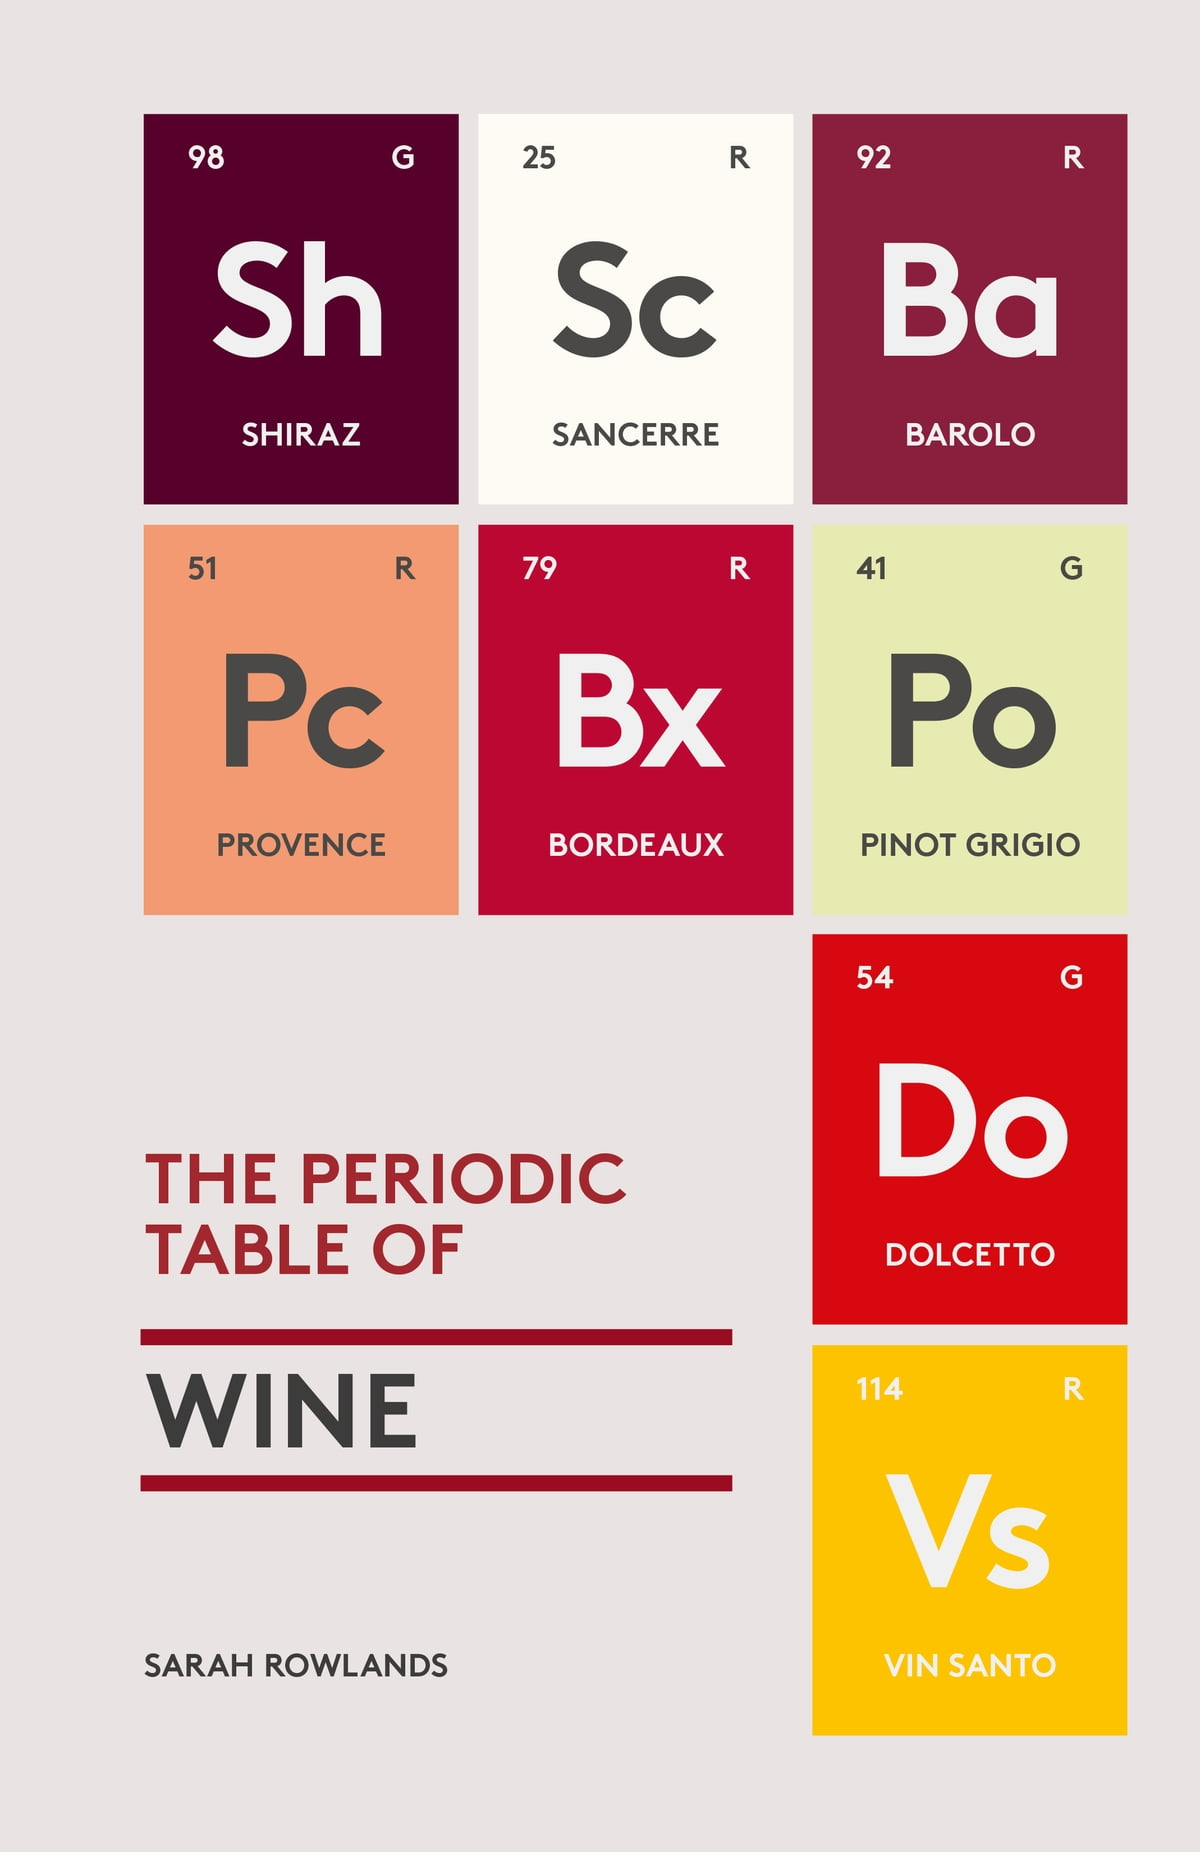 Periodic table of wine images periodic table images the periodic table of wine ebook by sarah rowlands 9781683350460 the periodic table of wine ebook gamestrikefo Image collections